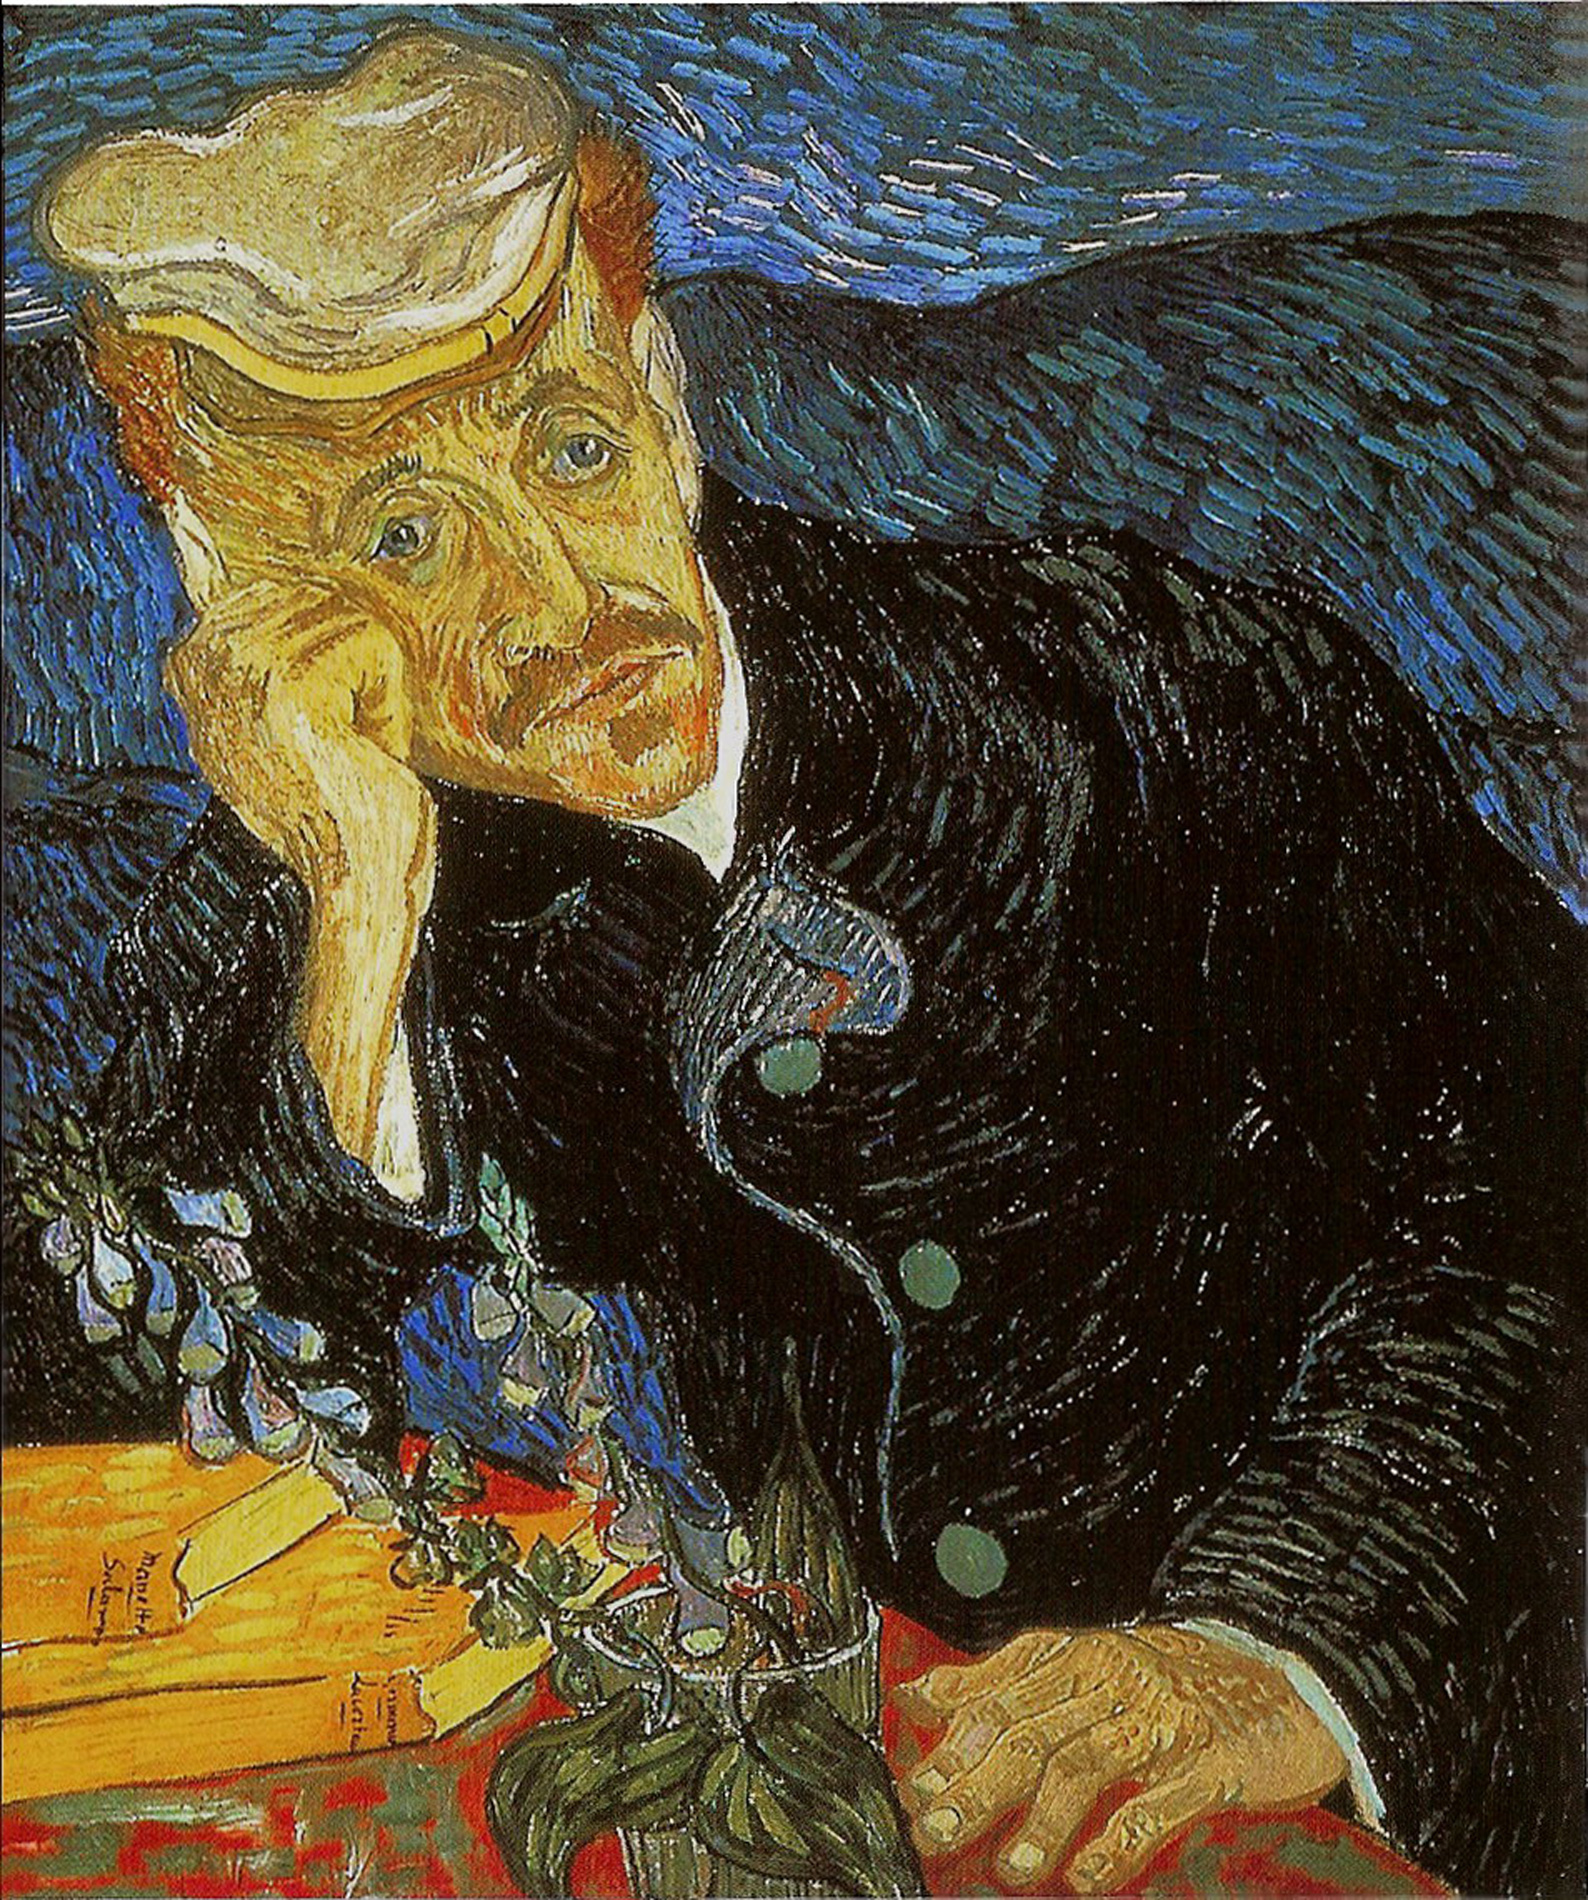 Vincent Van Gogh And Lessons About Persistence And Mental